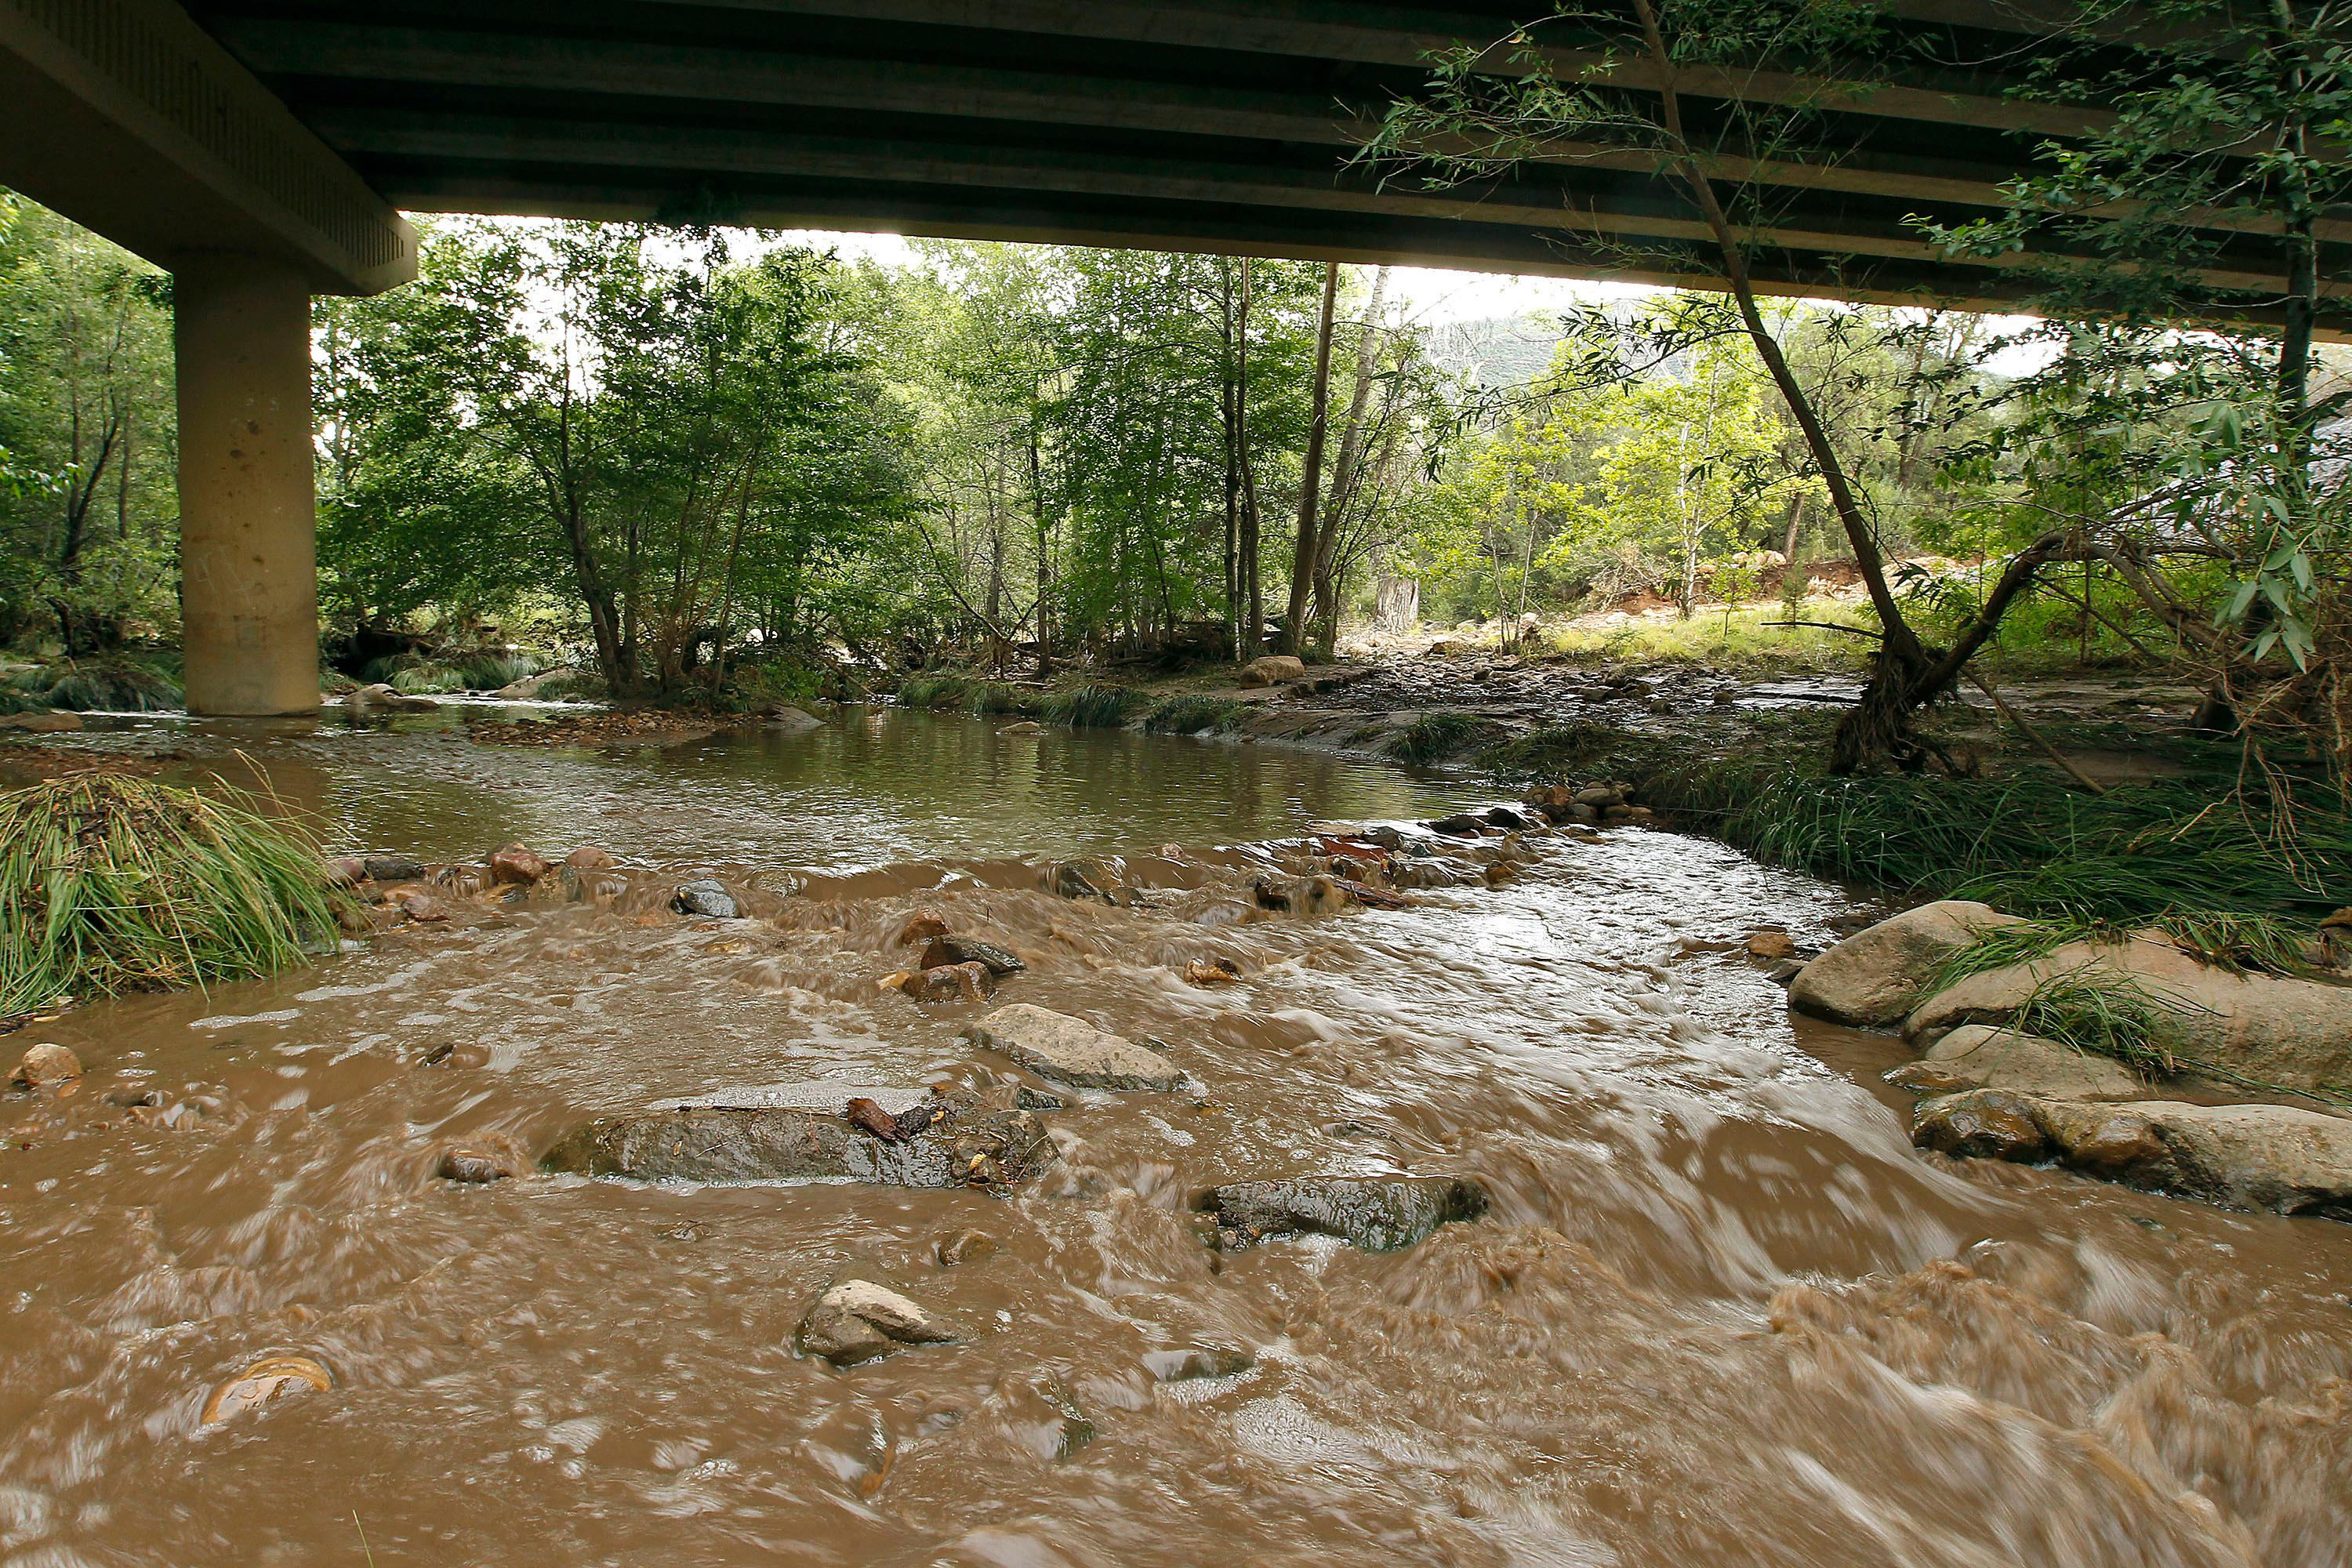 Muddy floodwaters of the East Verde River flow under a bridge where one victim of the flash flood was found during a search and rescue operation by the Gila County Sheriff's Office on Sunday, July 16, 2017, in Payson, Ariz. Search and rescue crews, including 40 people on foot and others in a helicopter, have recovered bodies of children and adults, some as far as two miles down the river after Saturday's flash flooding poured over a popular swimming area inside the Tonto National Forest in central Arizona. (AP Photo/Ralph Freso)